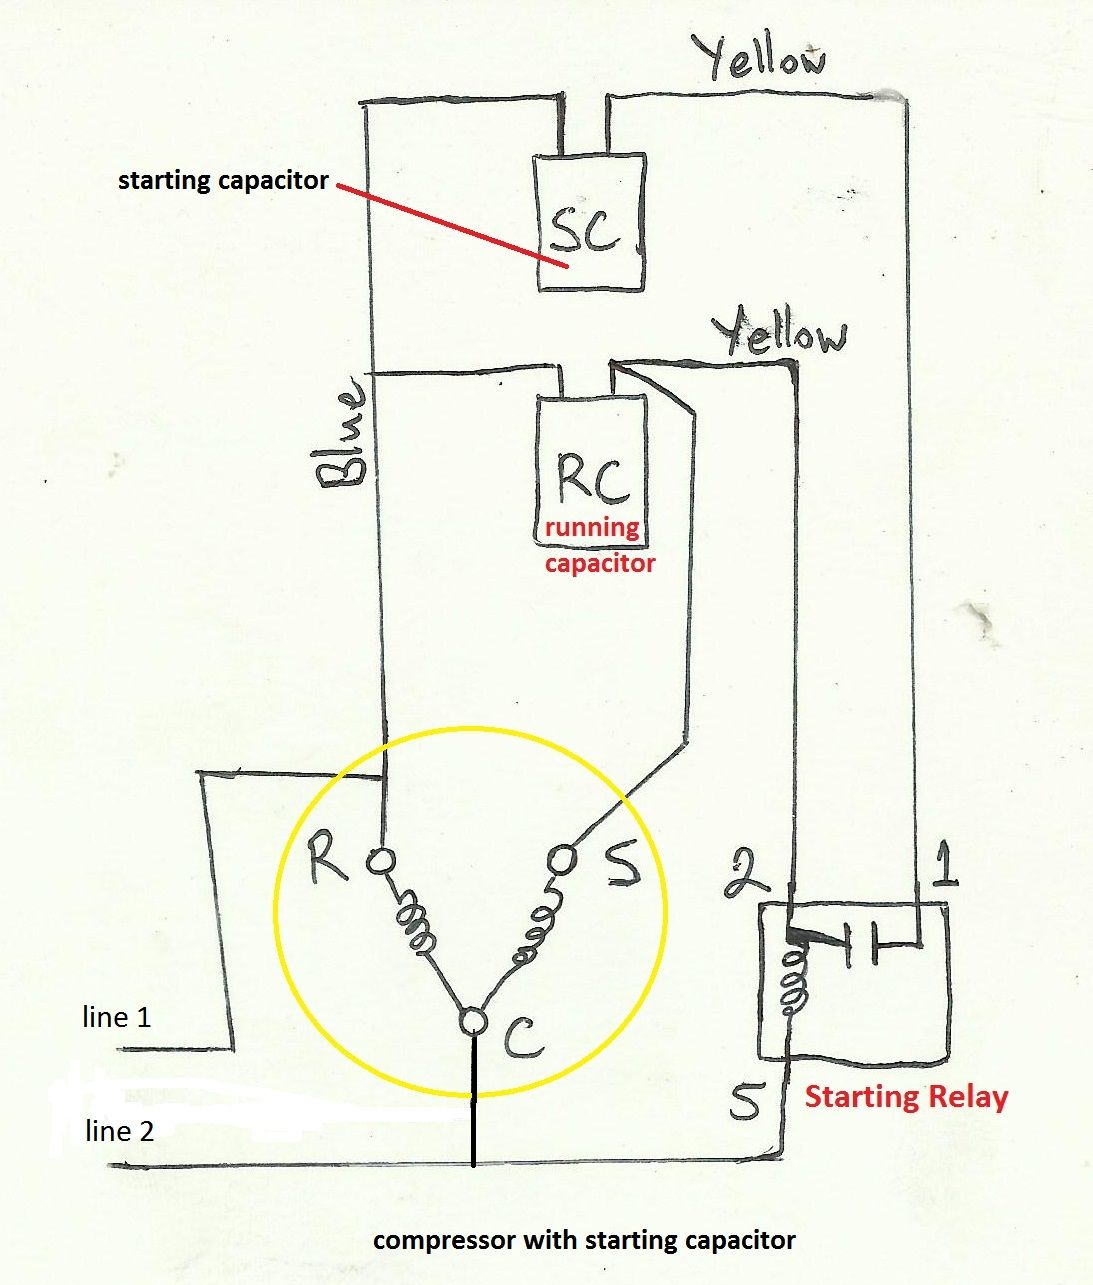 Compressor start relay wiring diagram www casei store \u2022 start diagram relay wiring compressor 117u6003 compressor wire diagram wiring diagram rh vw2 automobil hessen de ac compressor start relay wiring diagram